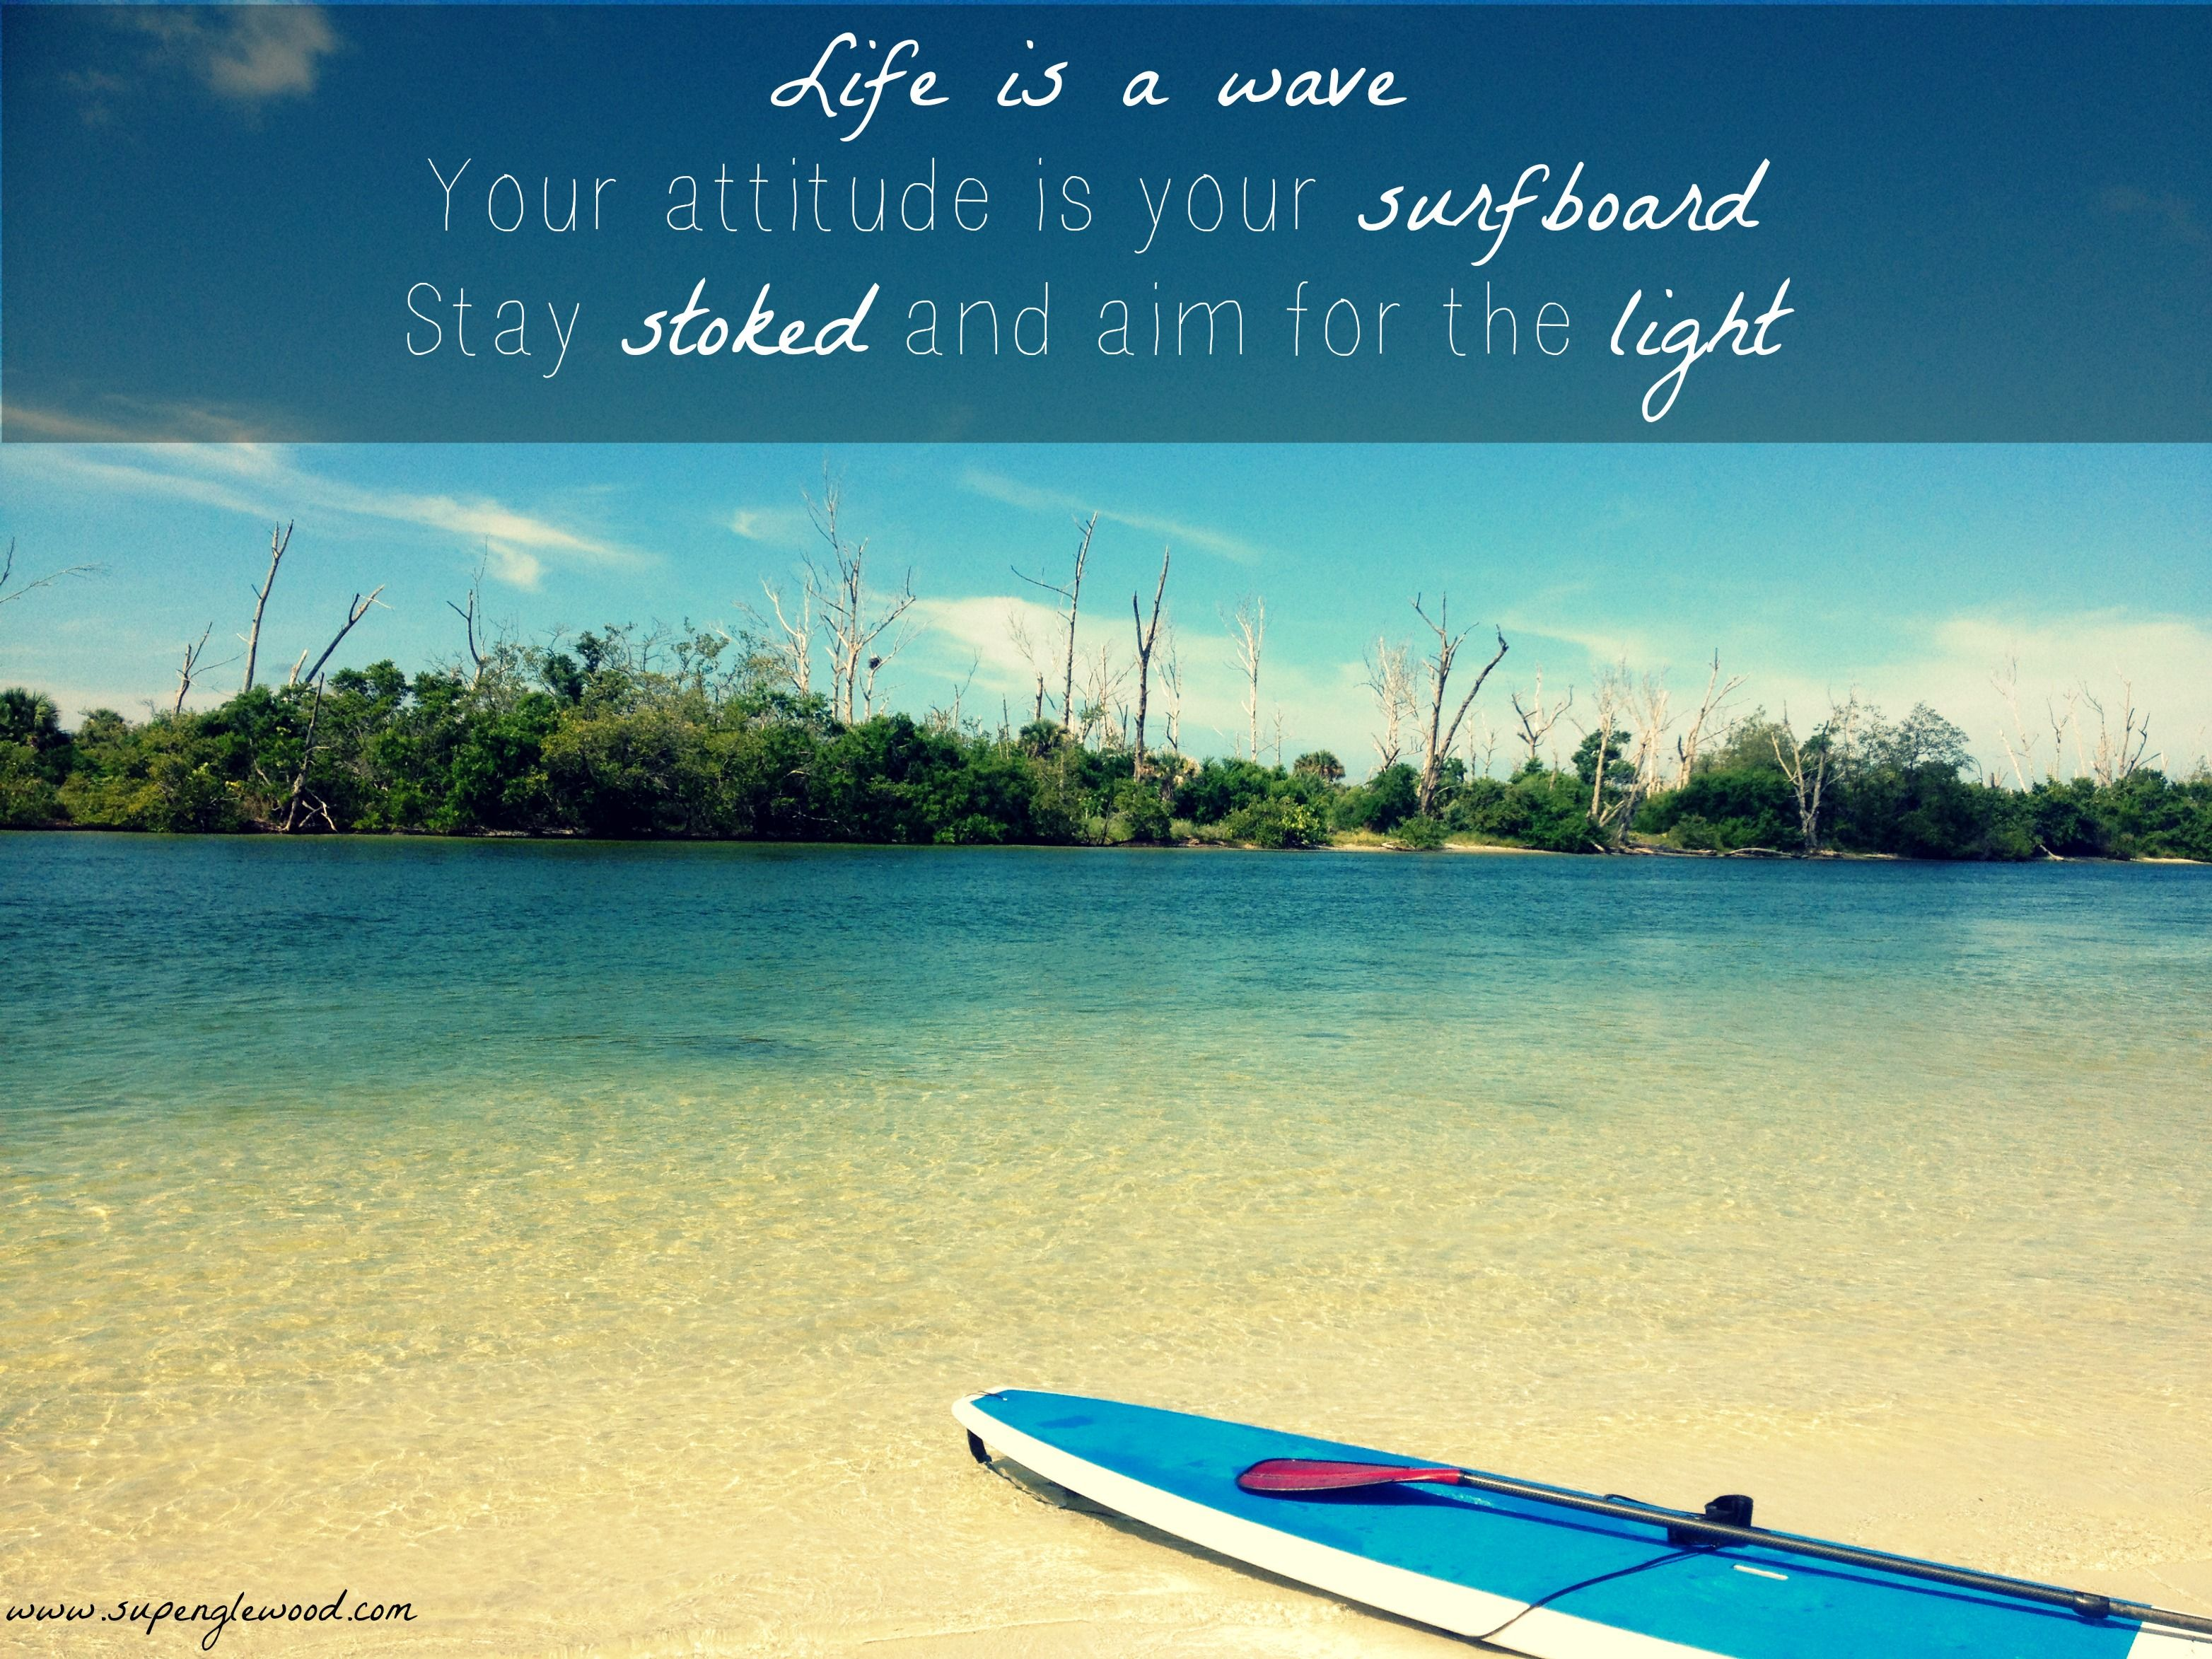 Life is a wave! Paddle board in Englewood, Florida ...